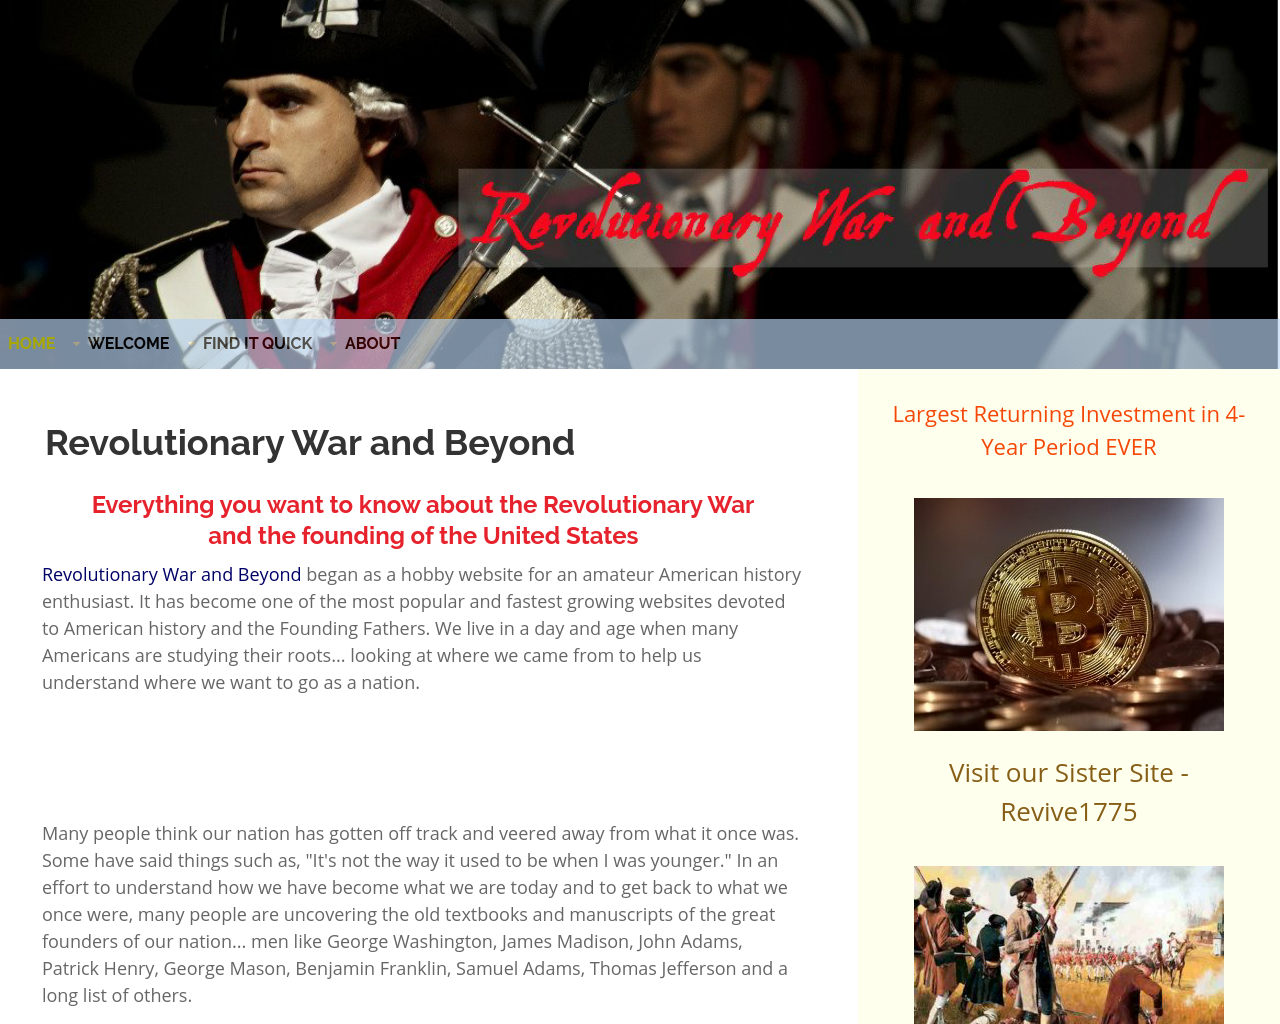 Revolutionary-War-and-Beyond-Advertising-Reviews-Pricing